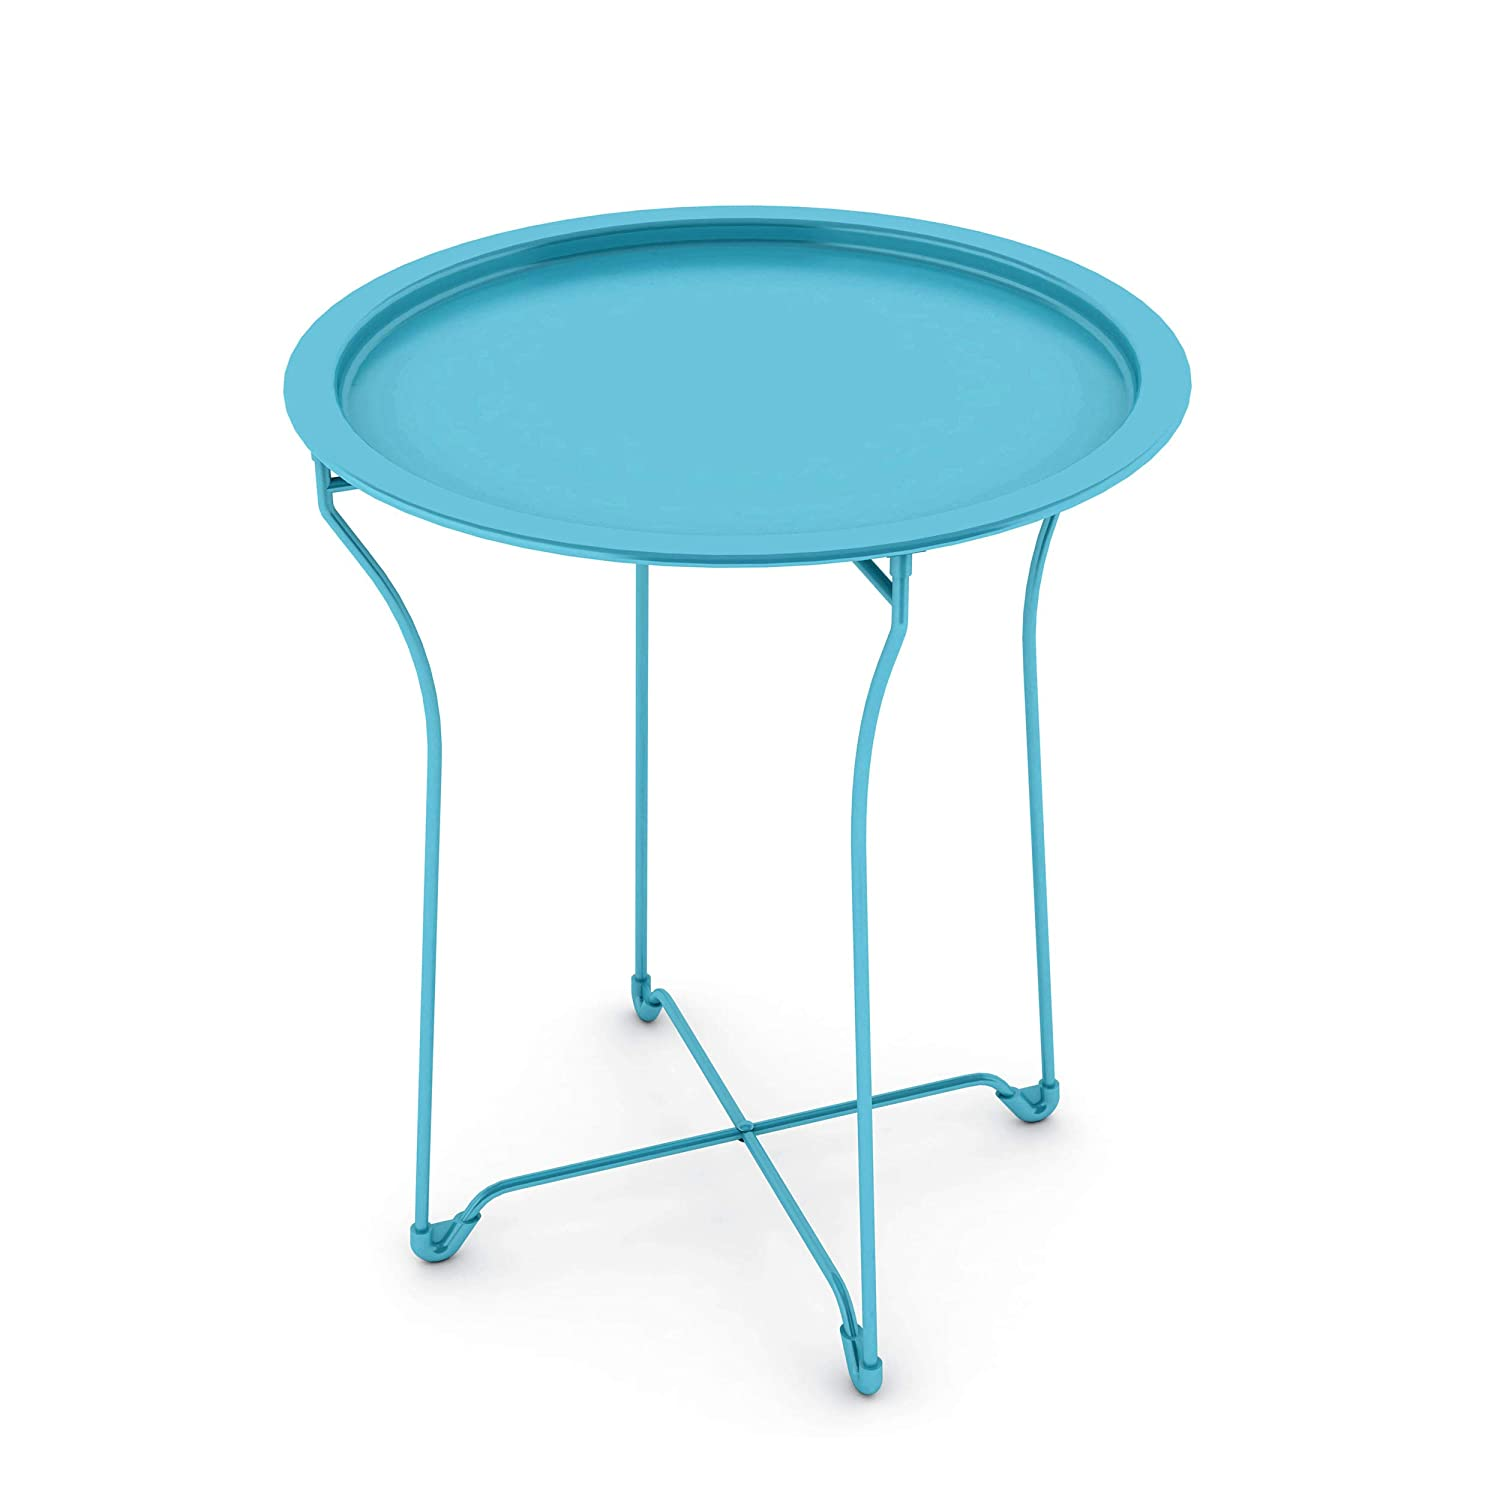 Atlantic urbSPACE Metal Side Table - Stylish Folding Tray Table, Sturdy Steel Construction with Wear-Resistant Powder Coating, PN38436133 in Capri Breeze Inc. Home Furnishings